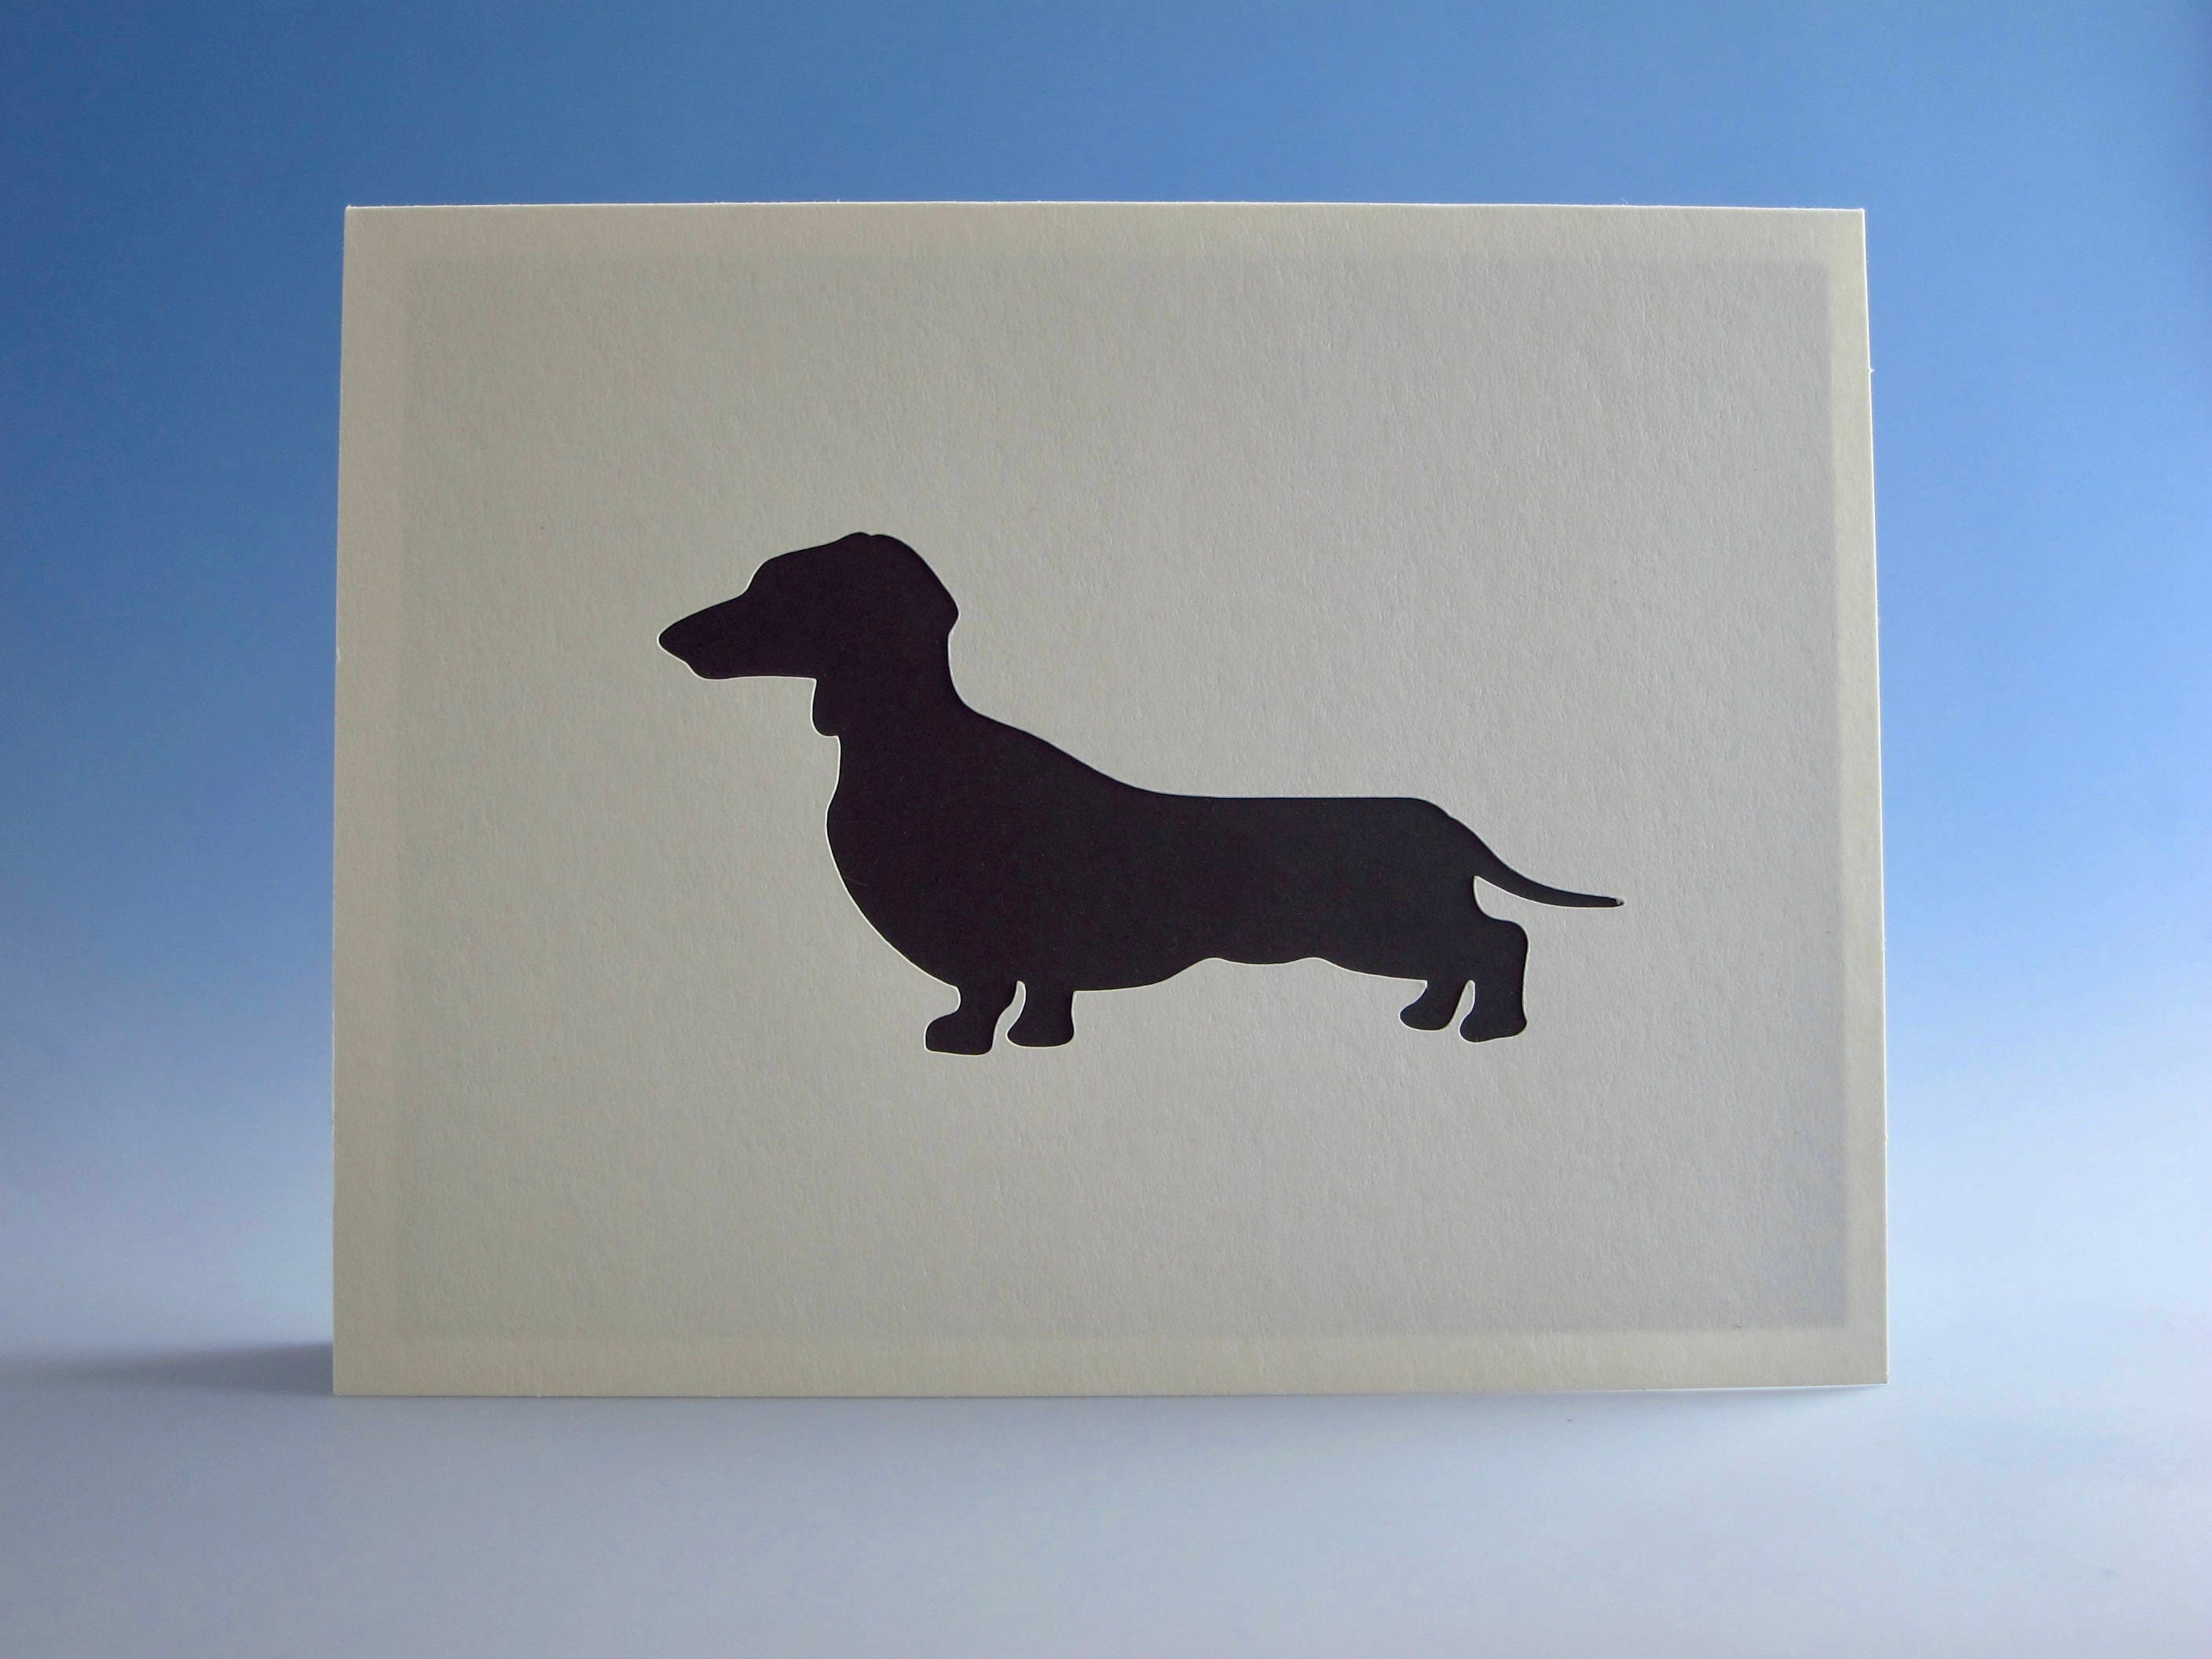 Dachshund card dachshund greeting card dog owner card dachshund dachshund card dachshund greeting card dog owner card dachshund birthday card dachshund m4hsunfo